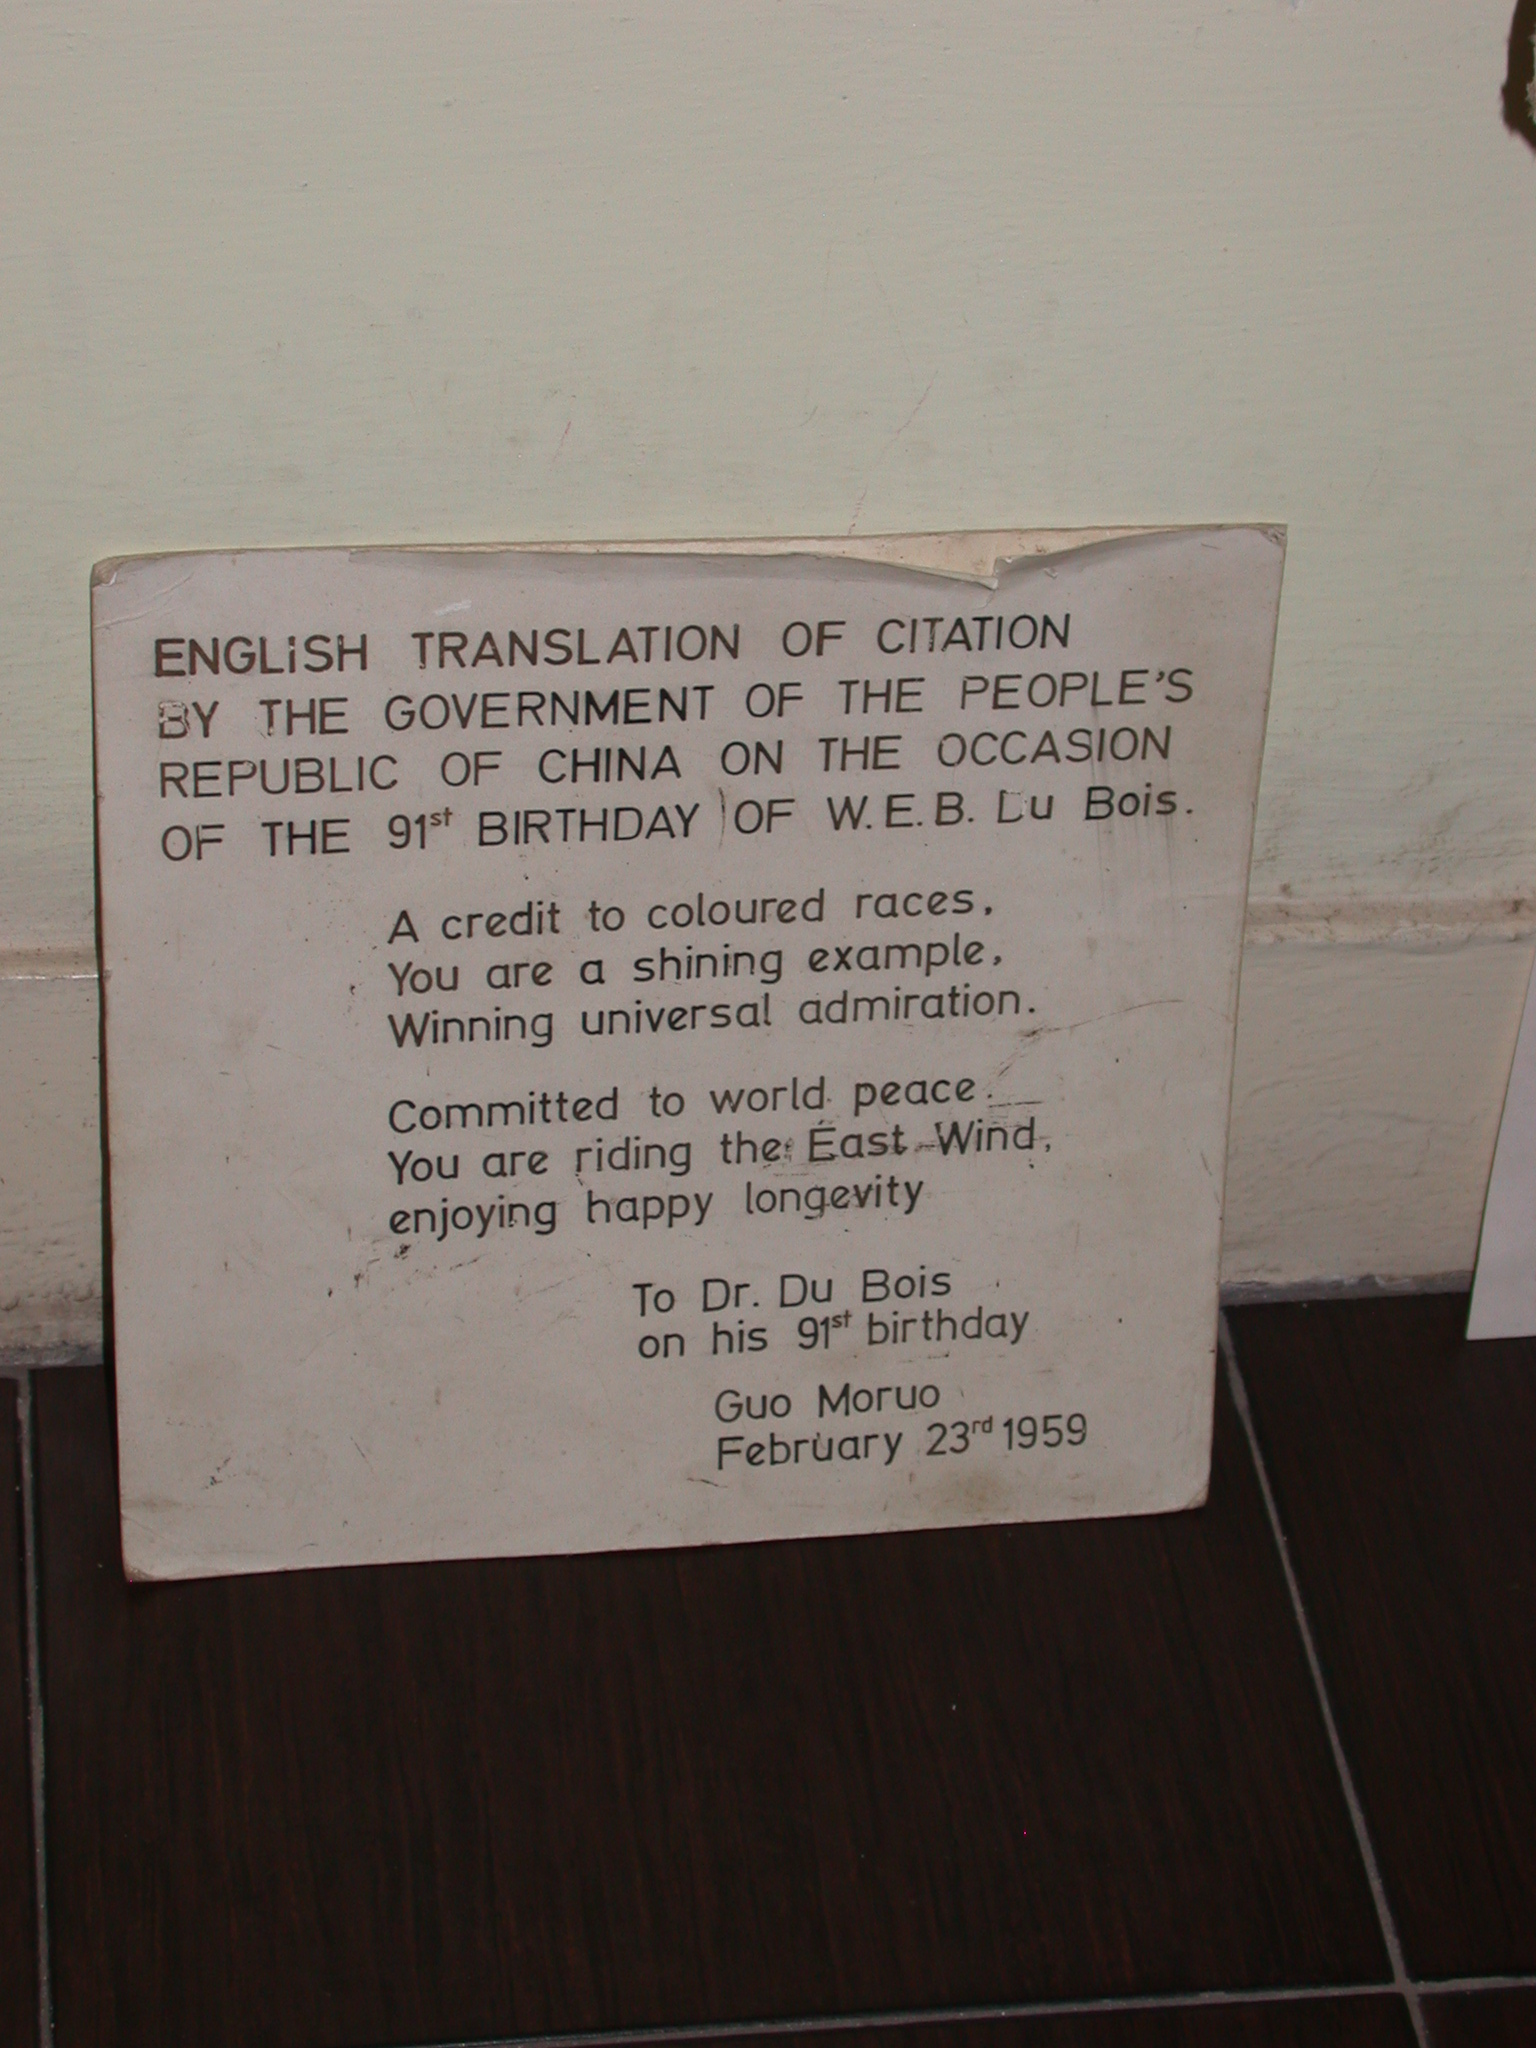 Translation of Peoples Republic of China Citation for WEB Dubois 91st Birthday, WEB DuBois Memorial Centre for Pan African Culture, Accra, Ghana